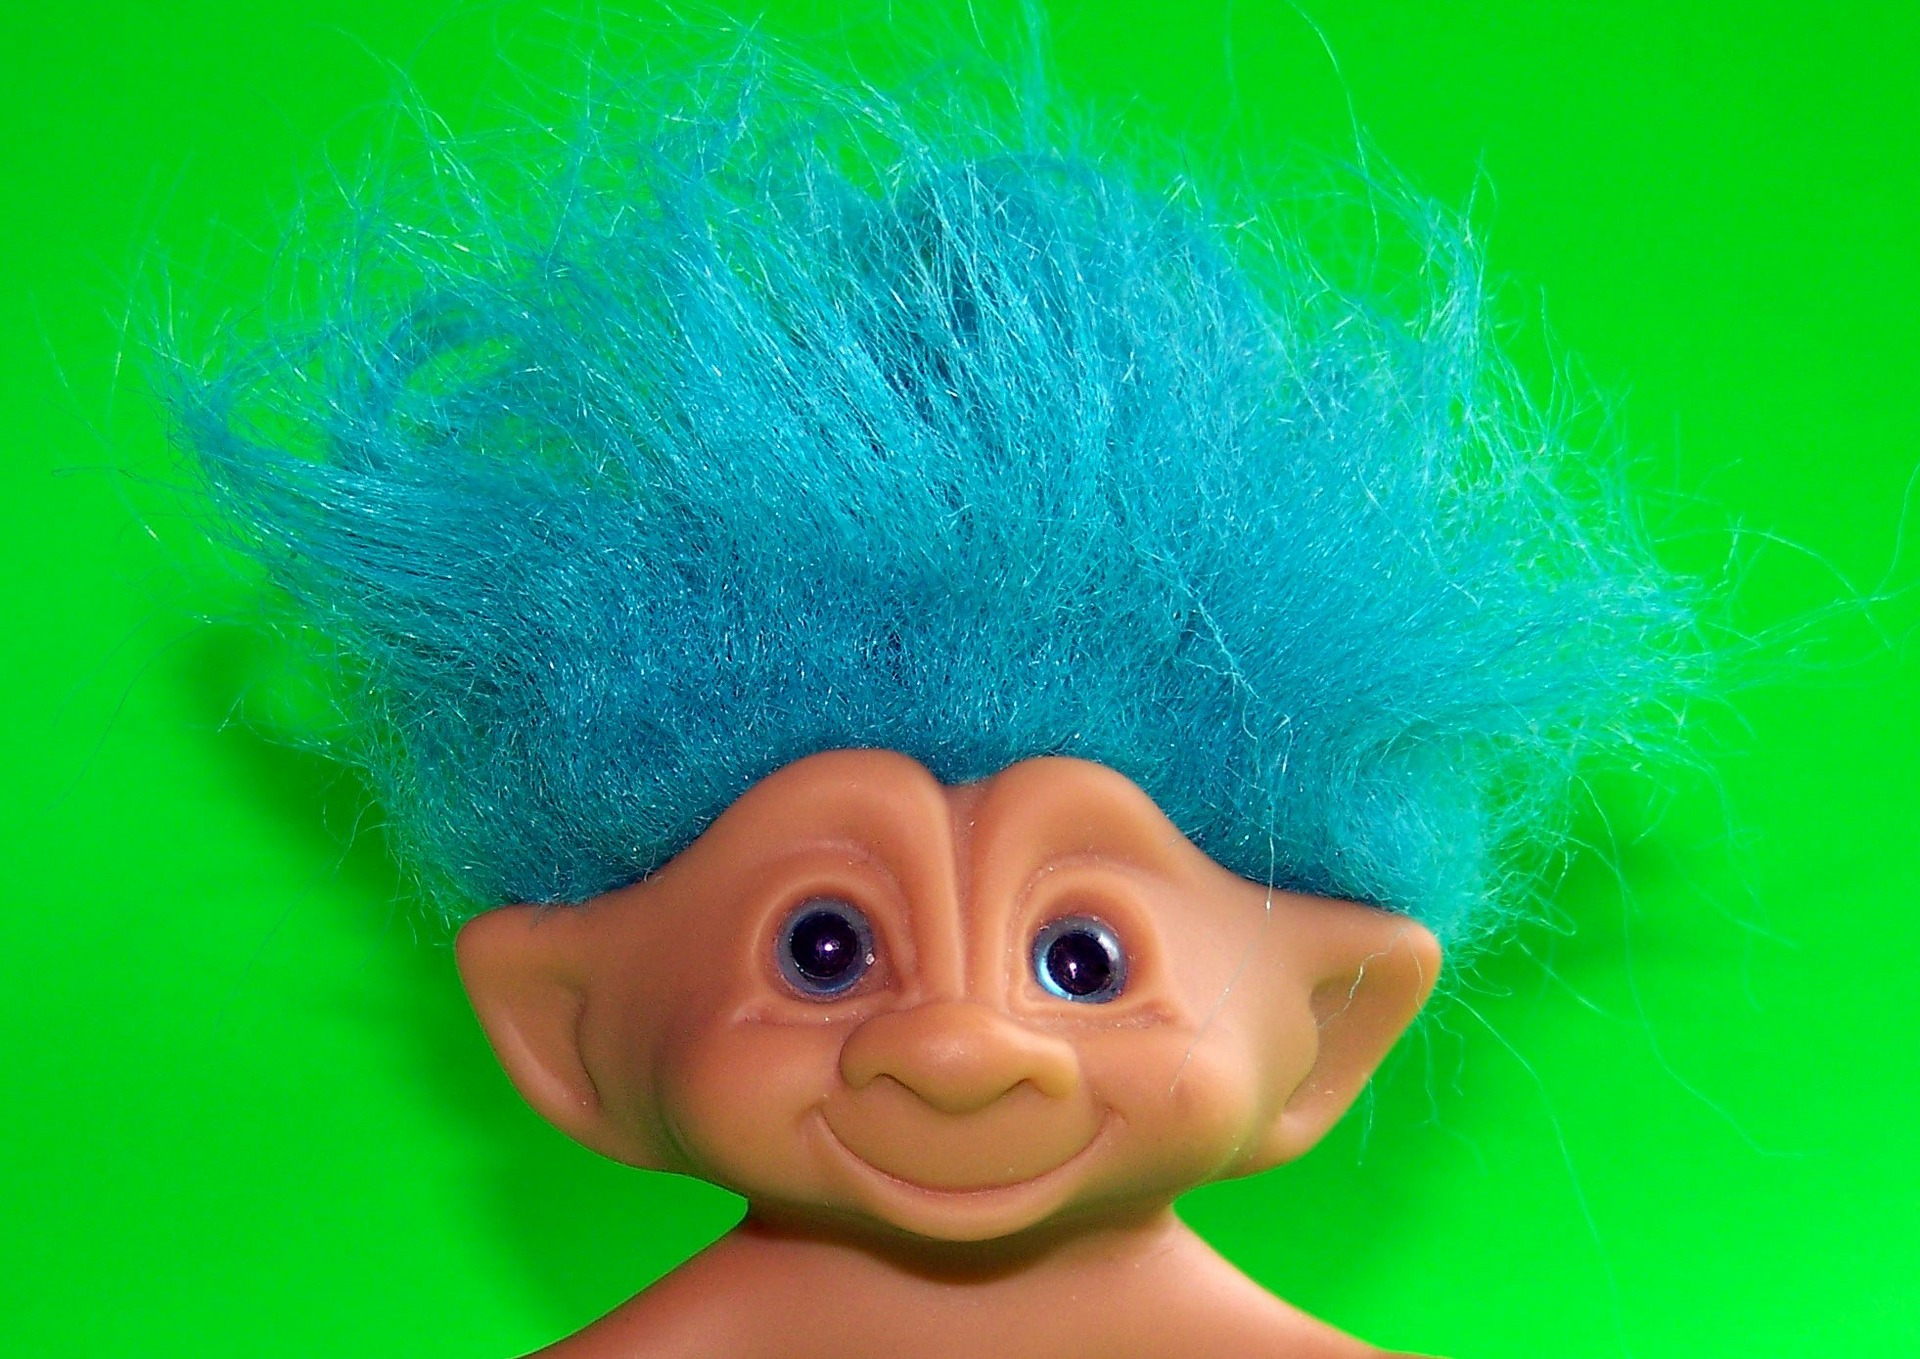 A closeup of a smiling, blue-haired troll head in front of a neon green background.